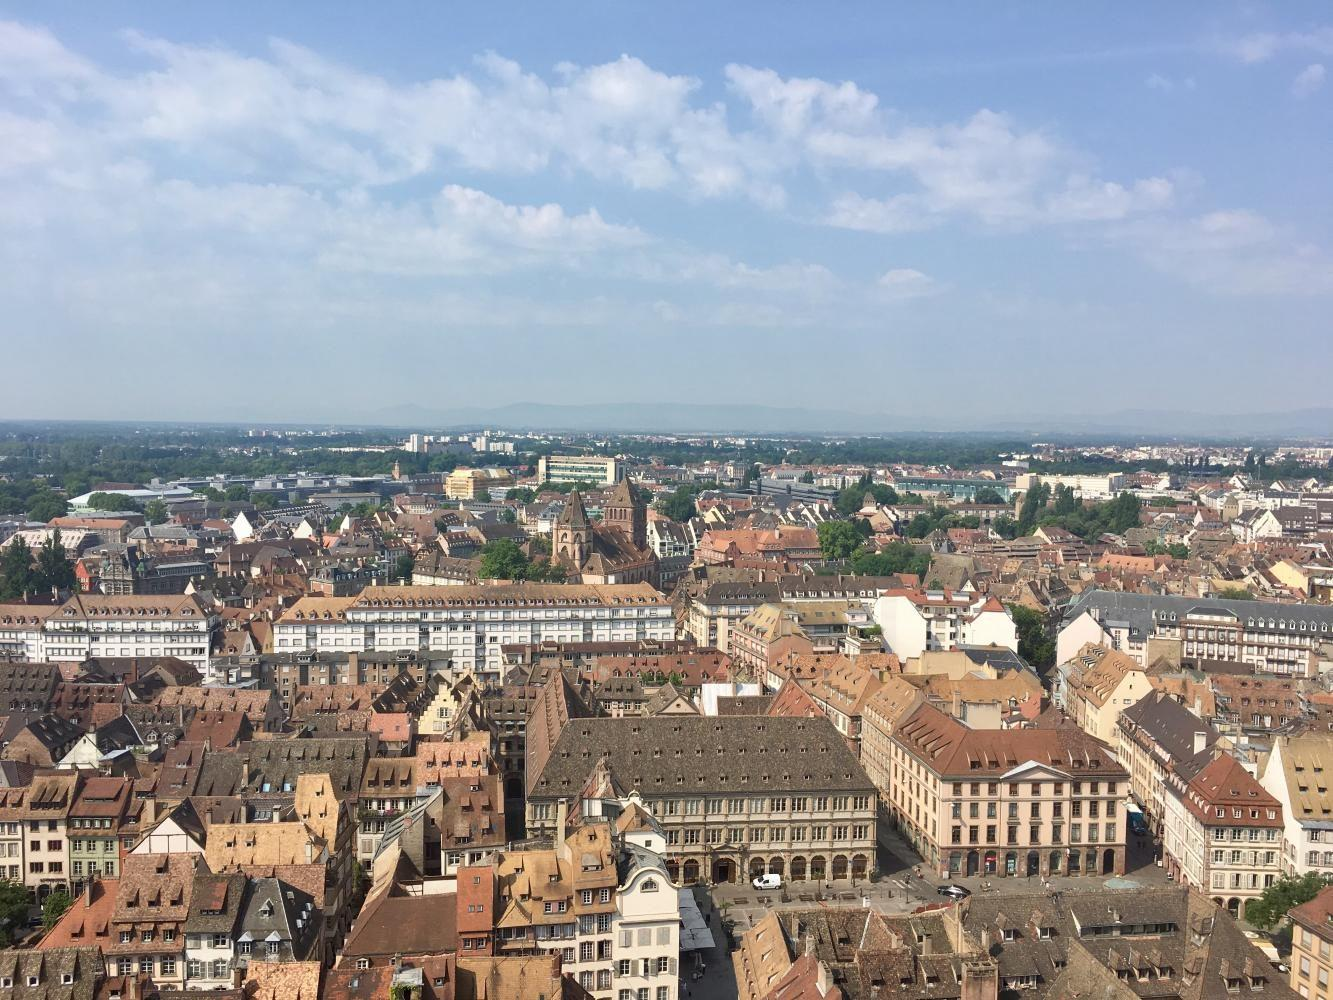 The+view+from+the+top+of+the+Strasbourg+Cathedral+